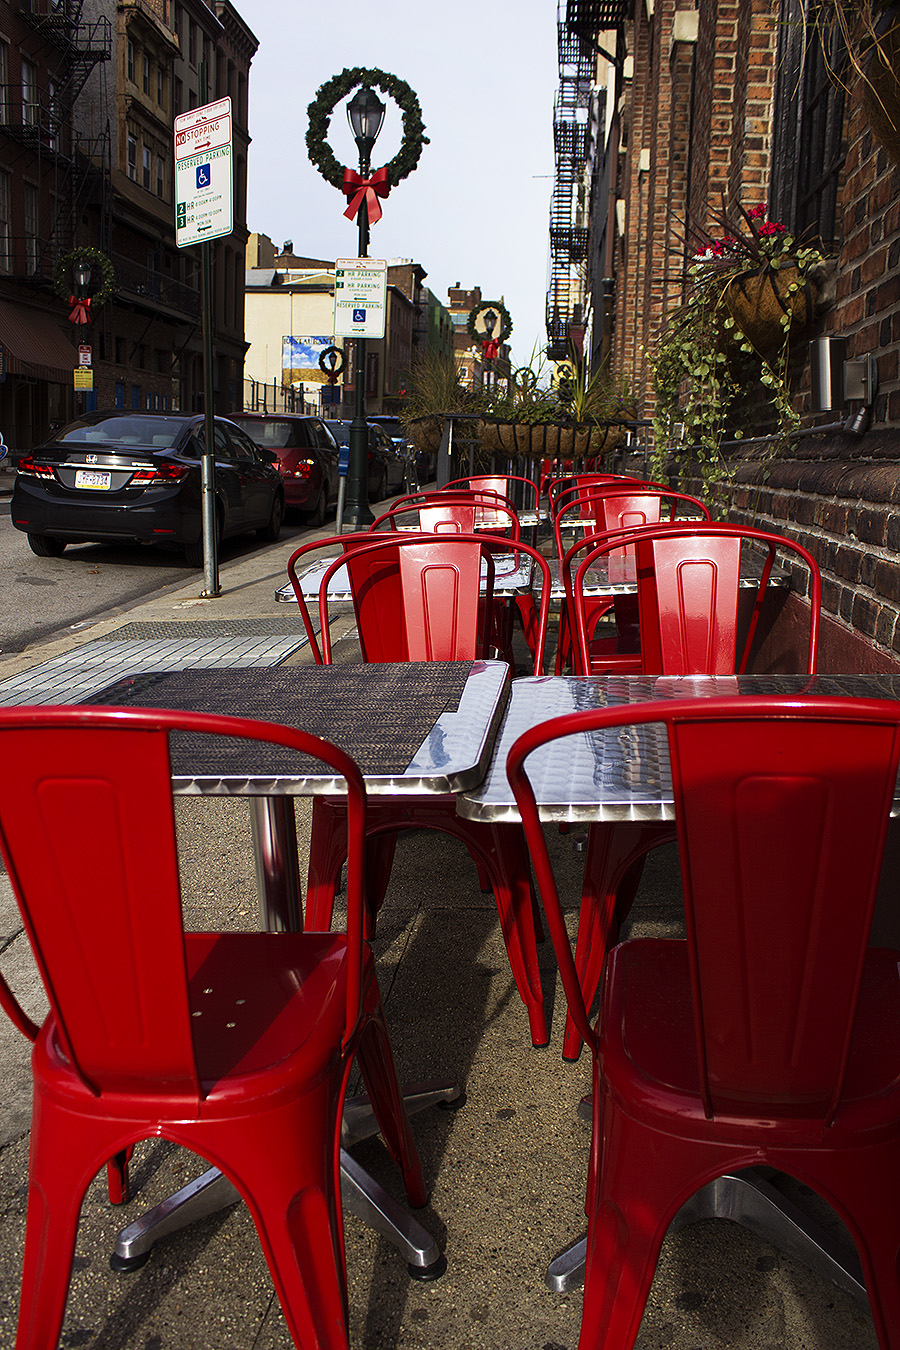 Anni_Liu_Photography_Individual_Project_21_Old_City_Restaurant_Chairs